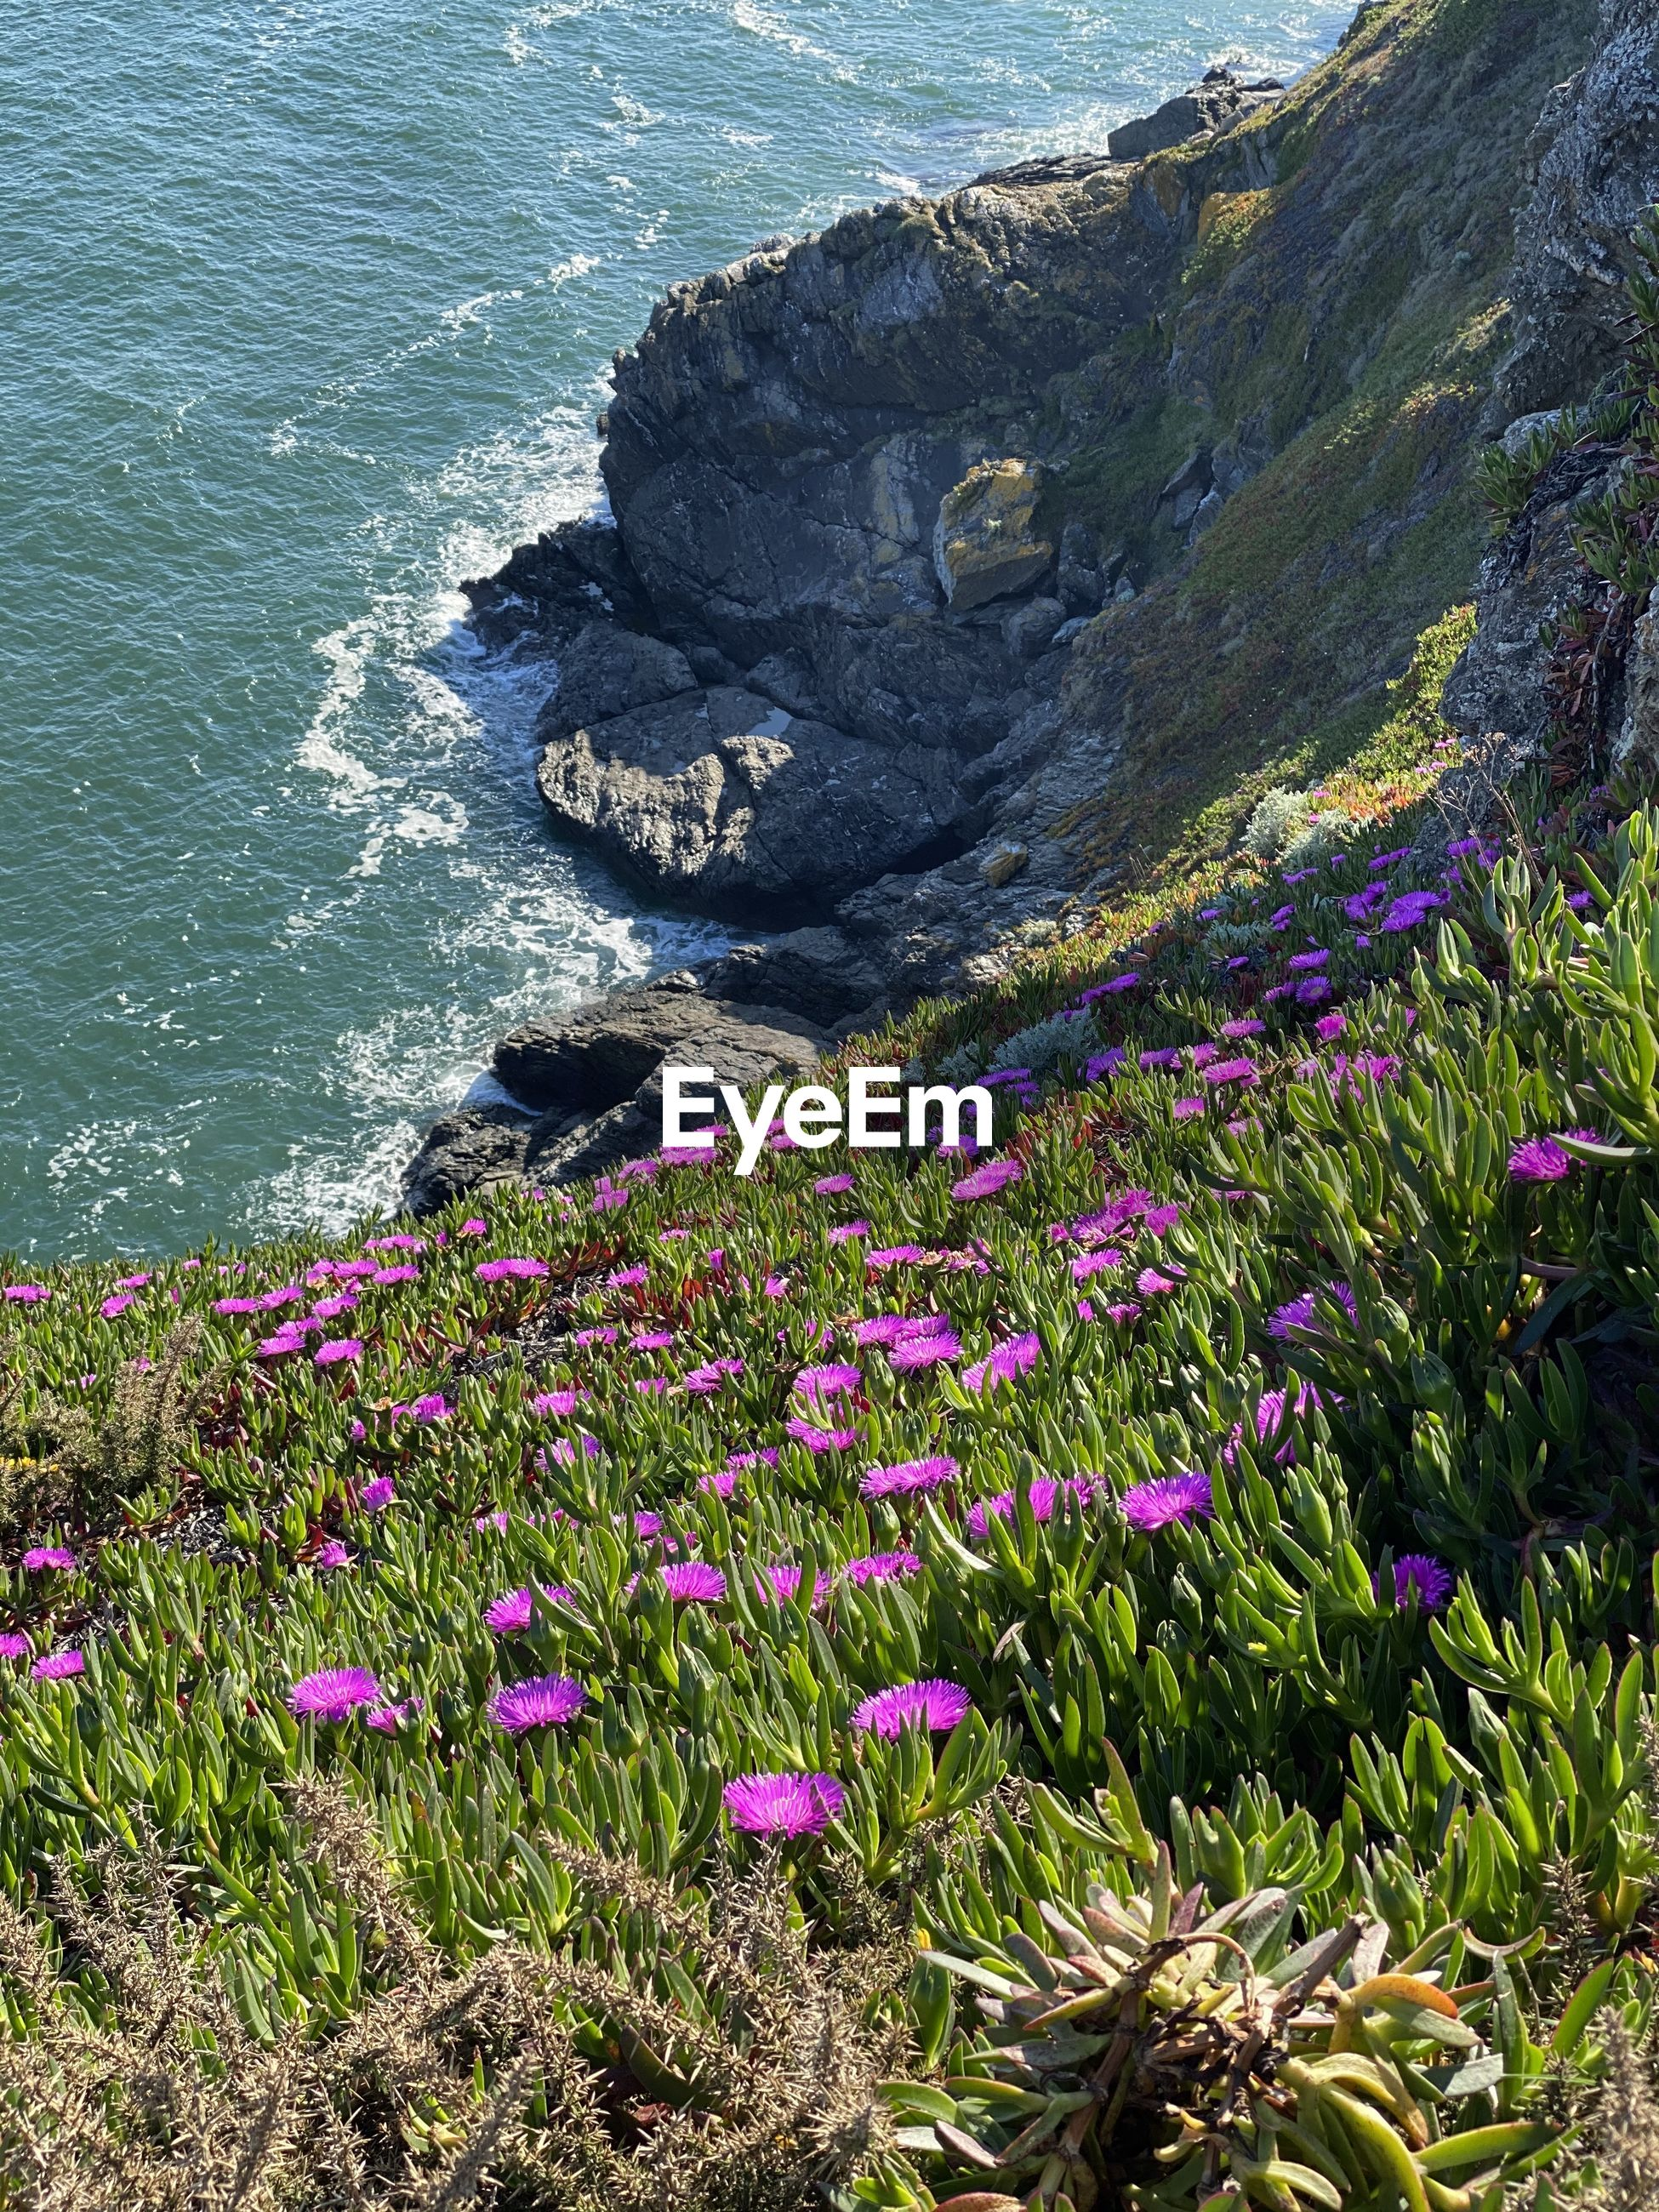 HIGH ANGLE VIEW OF PURPLE FLOWERING PLANTS ON ROCKS AT SEA